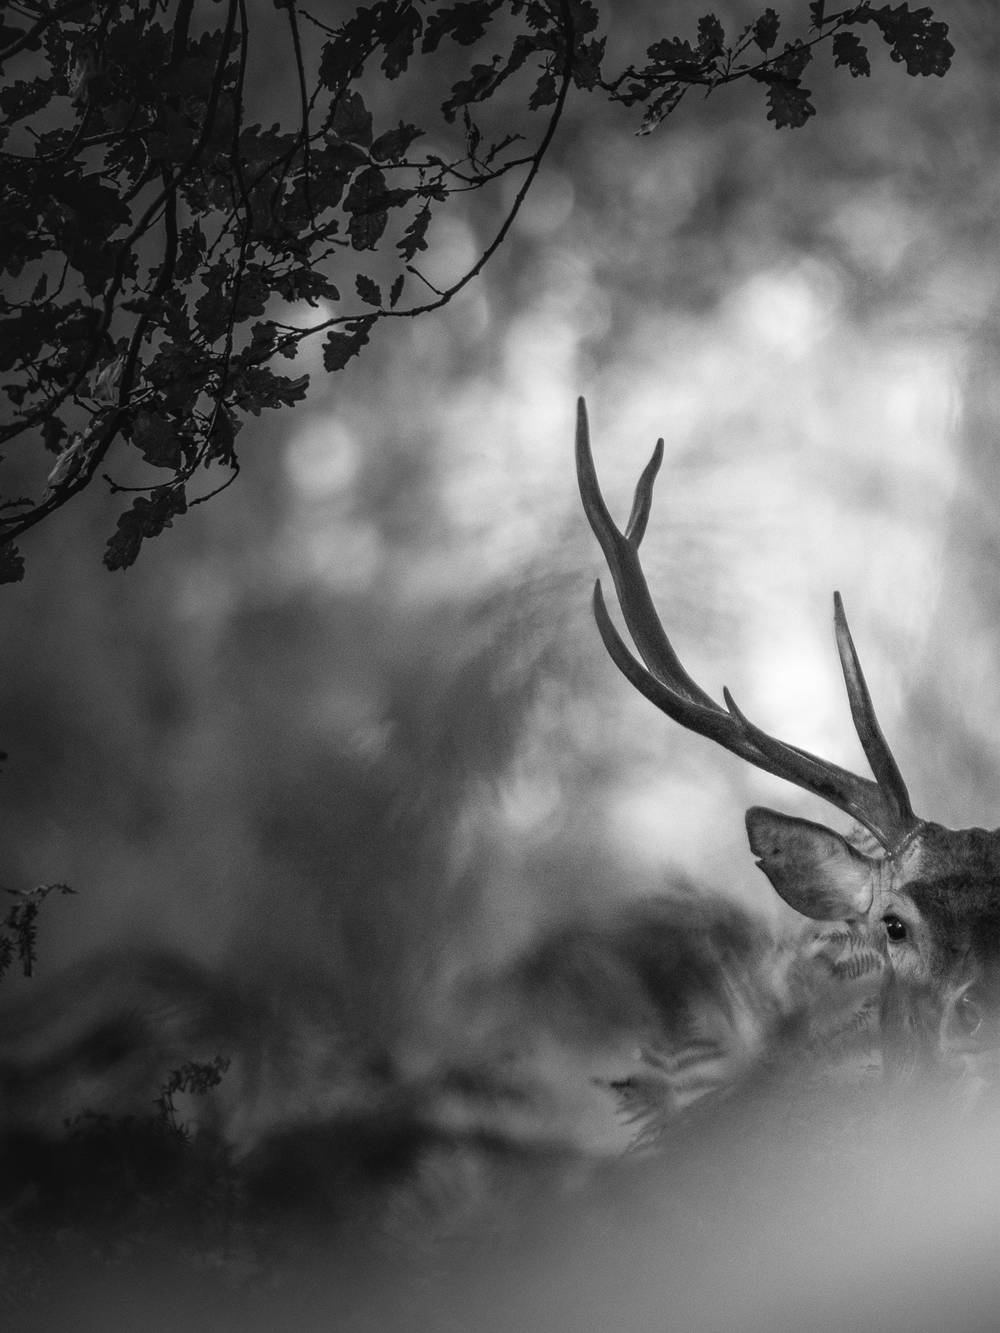 Black and white deer photography prints and posters for sale